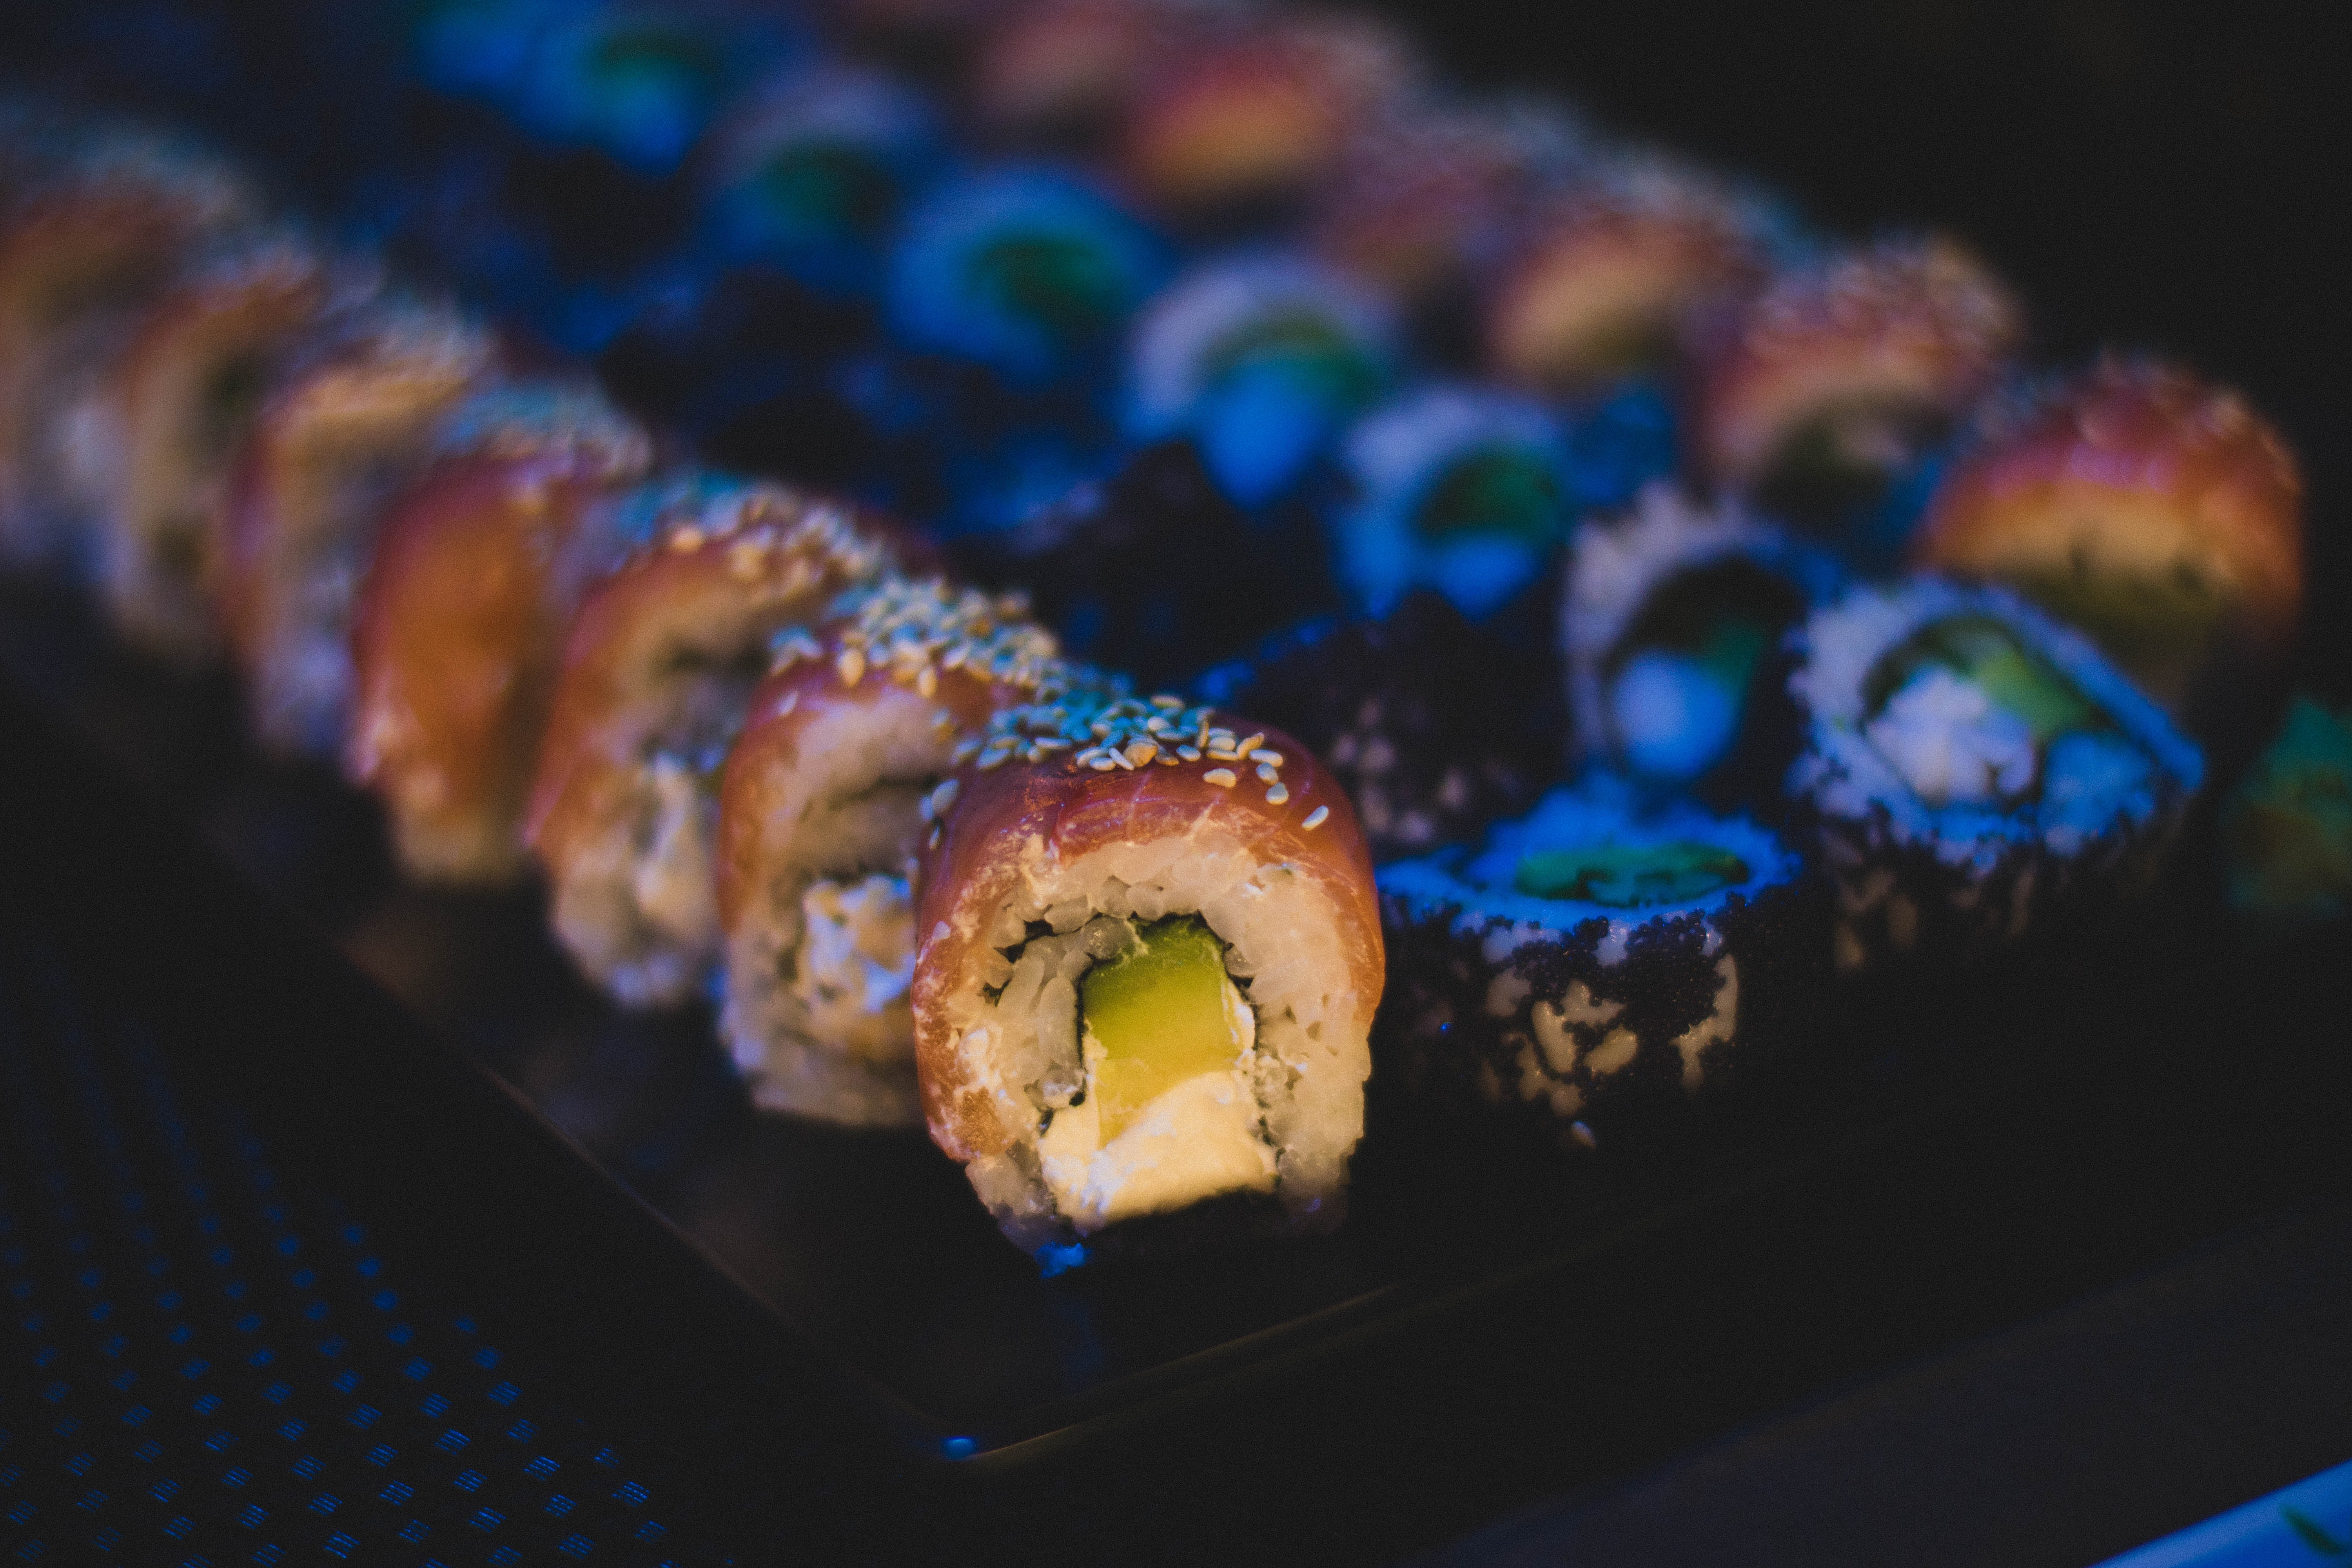 Sushi Dish, Blur, Meal, Tasty, Table, HQ Photo